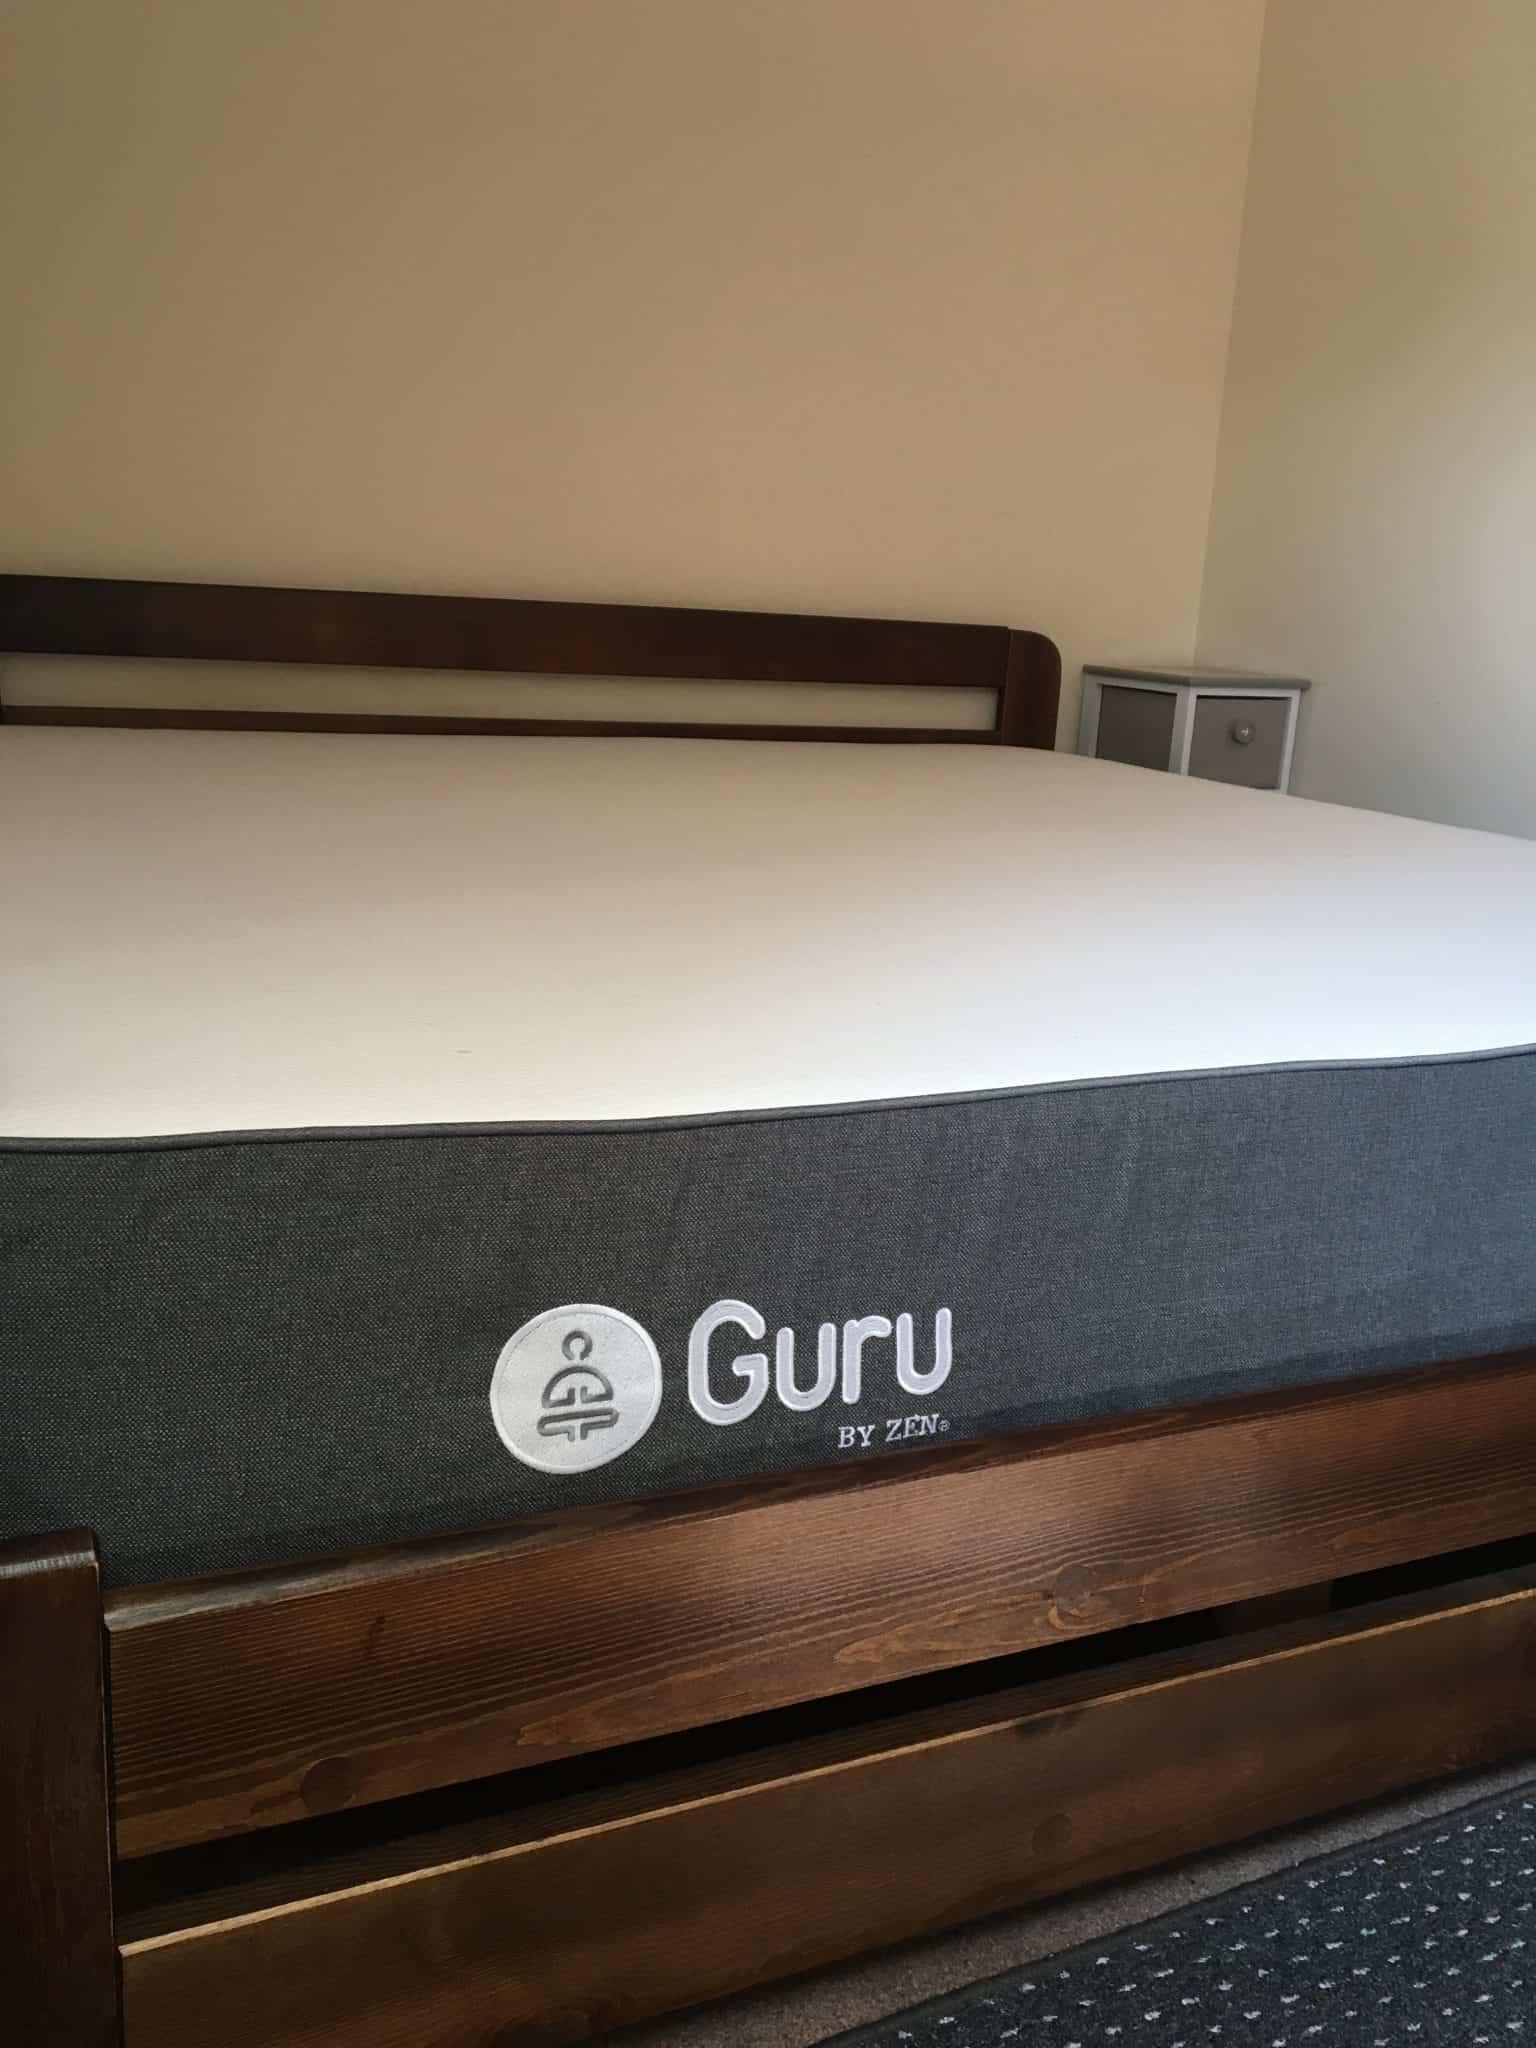 Guru by Zen mattress